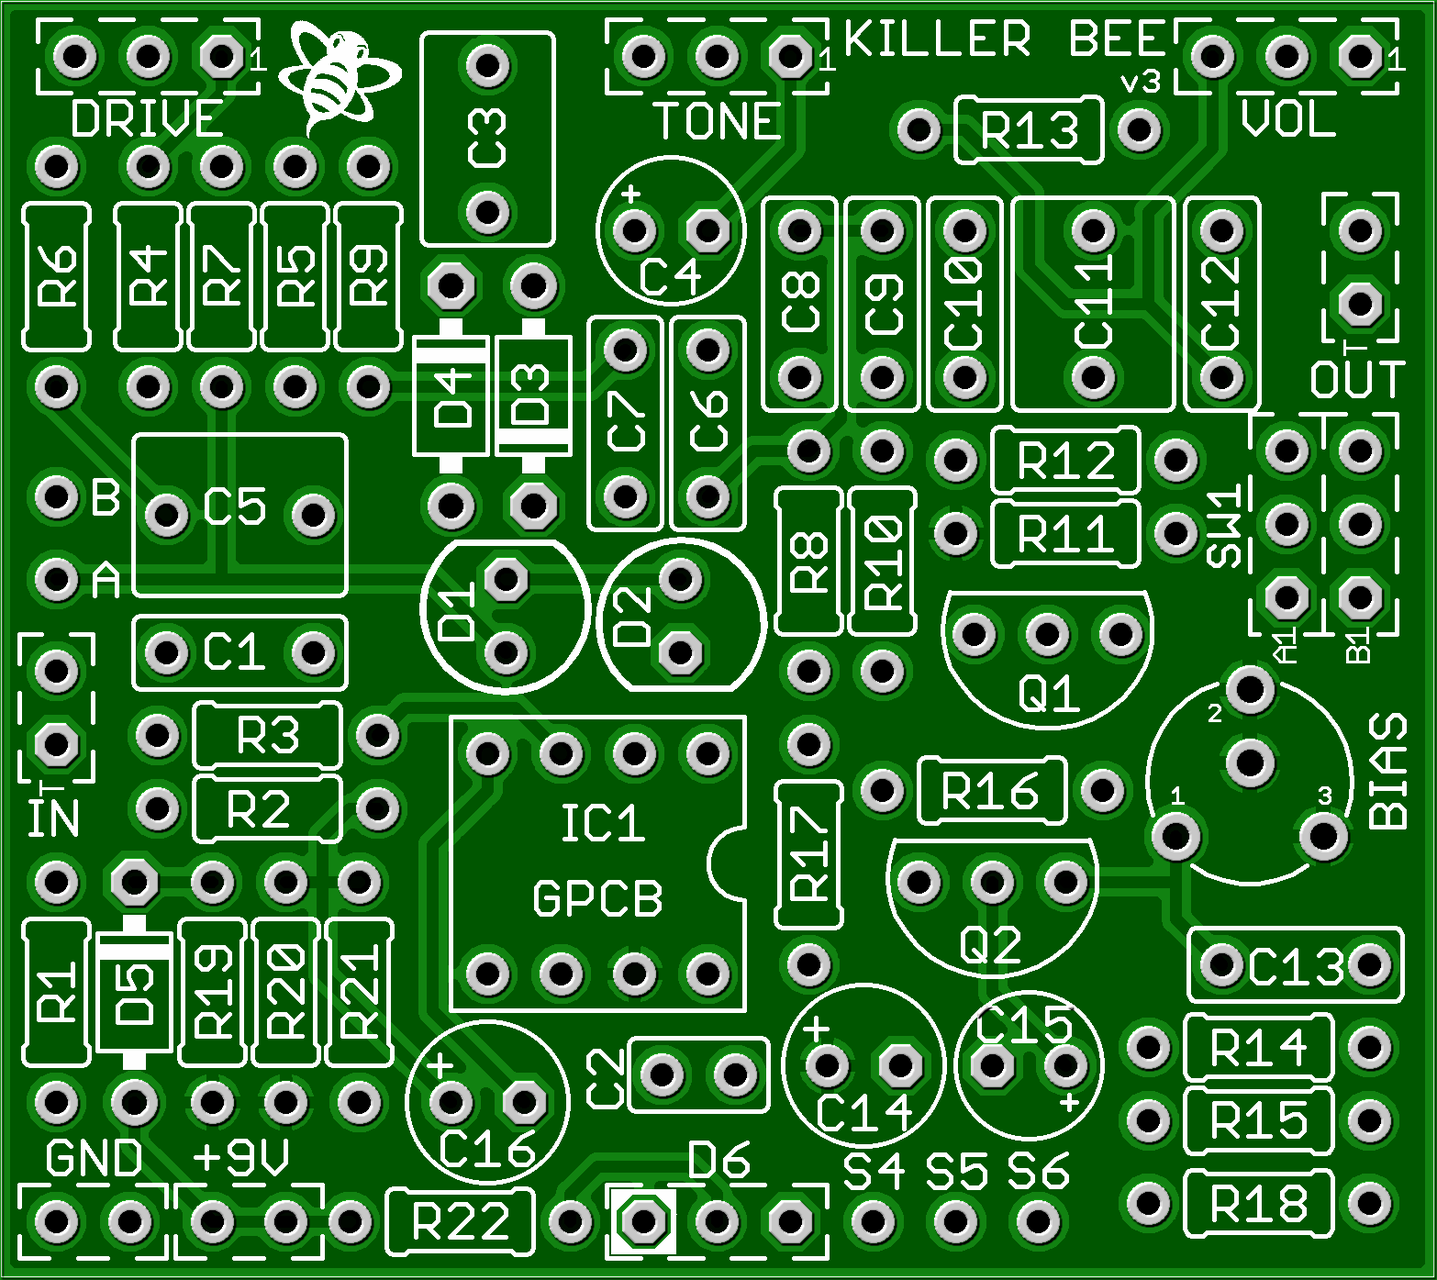 Killer Bee Kit Top Quality Diy Guitar Pedal Kits Doityourself How To Make A Circuit Board Pick Do It